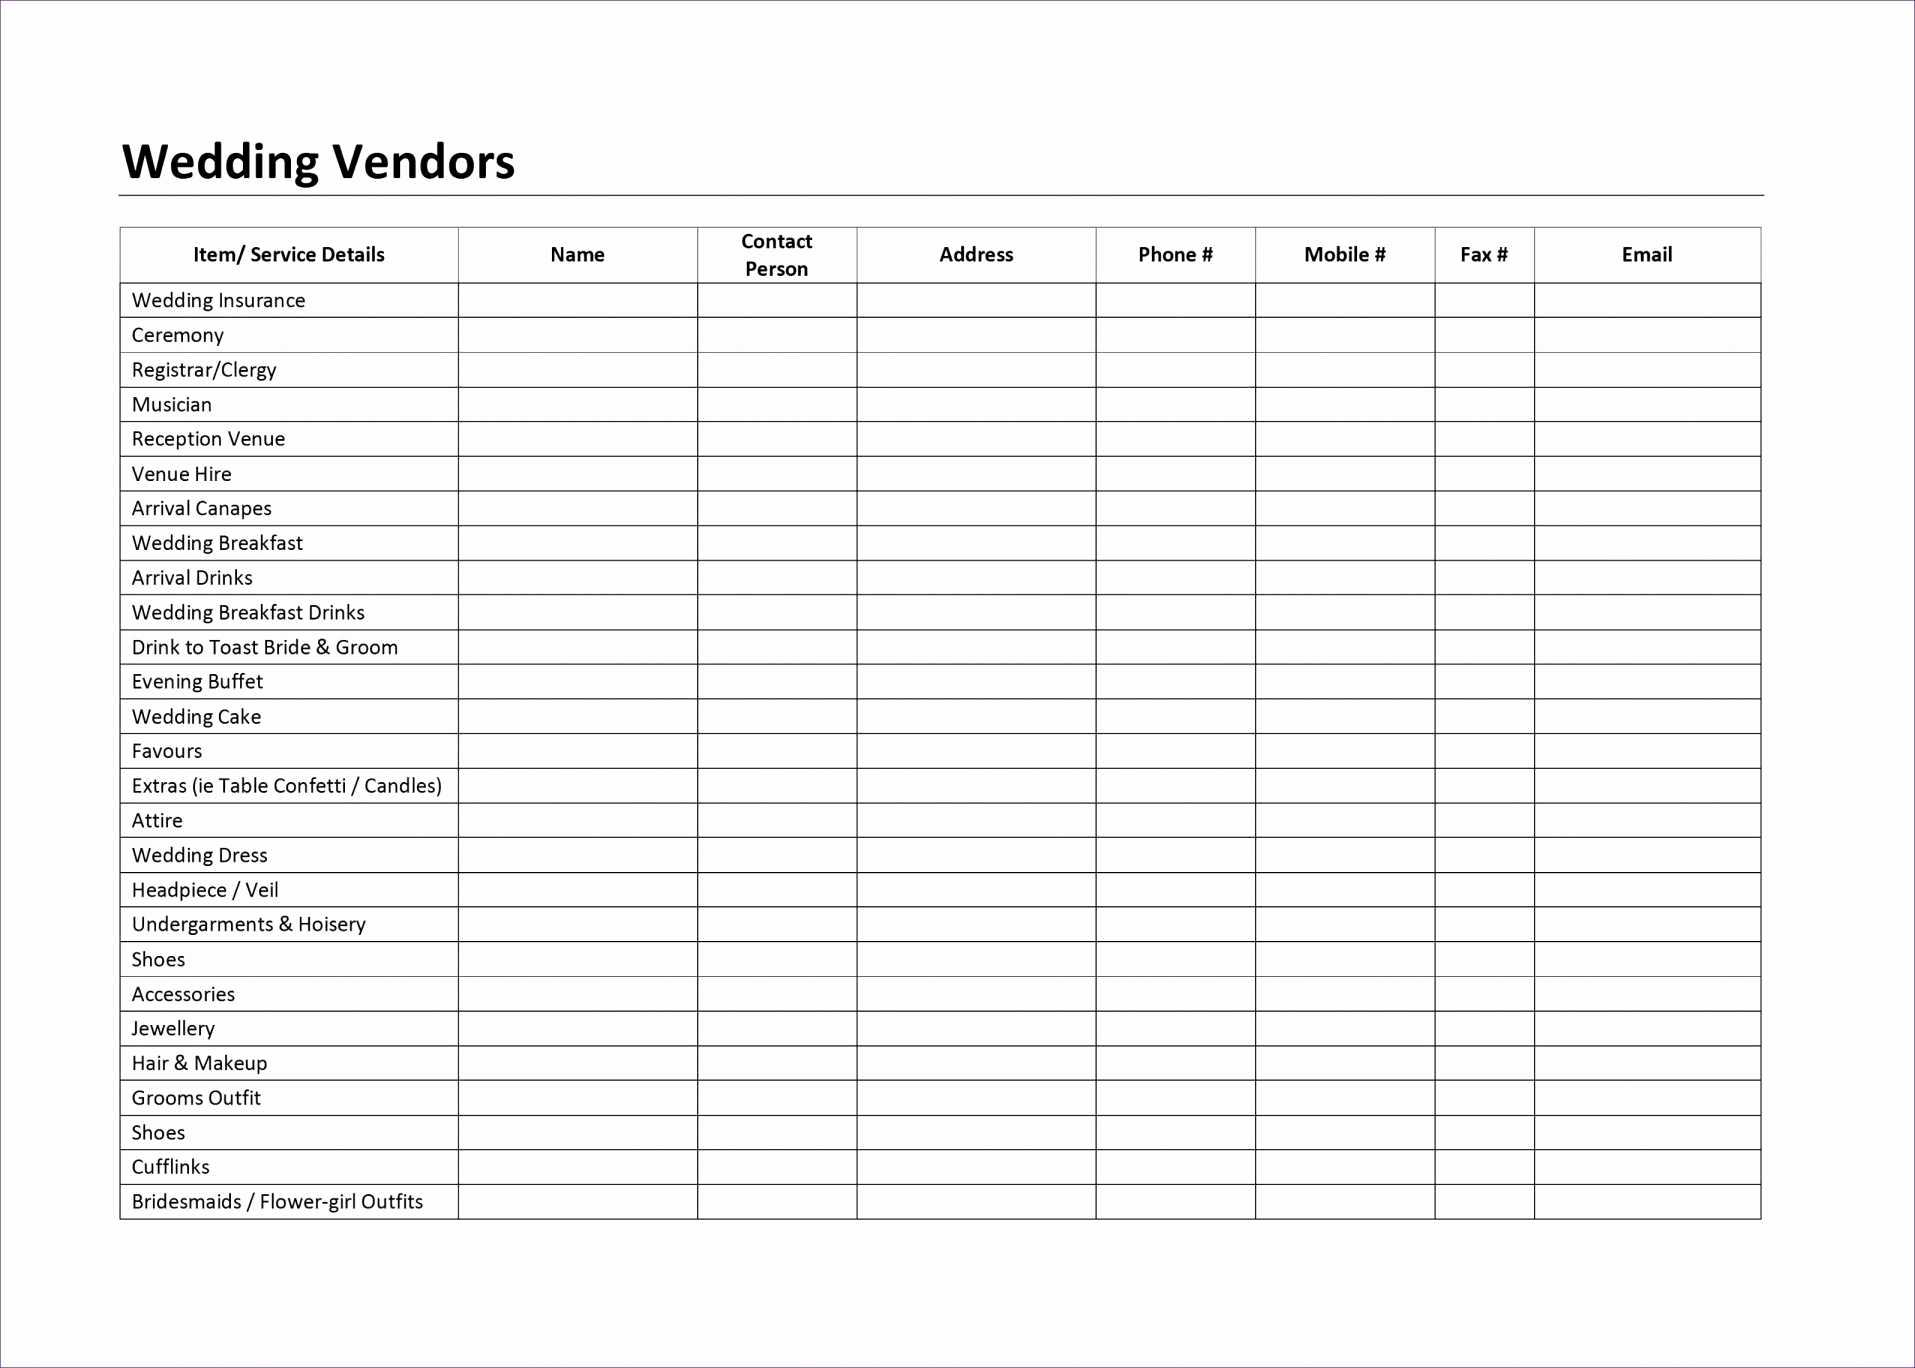 Wholesale Spreadsheet Spreadsheet Downloa Wholesale